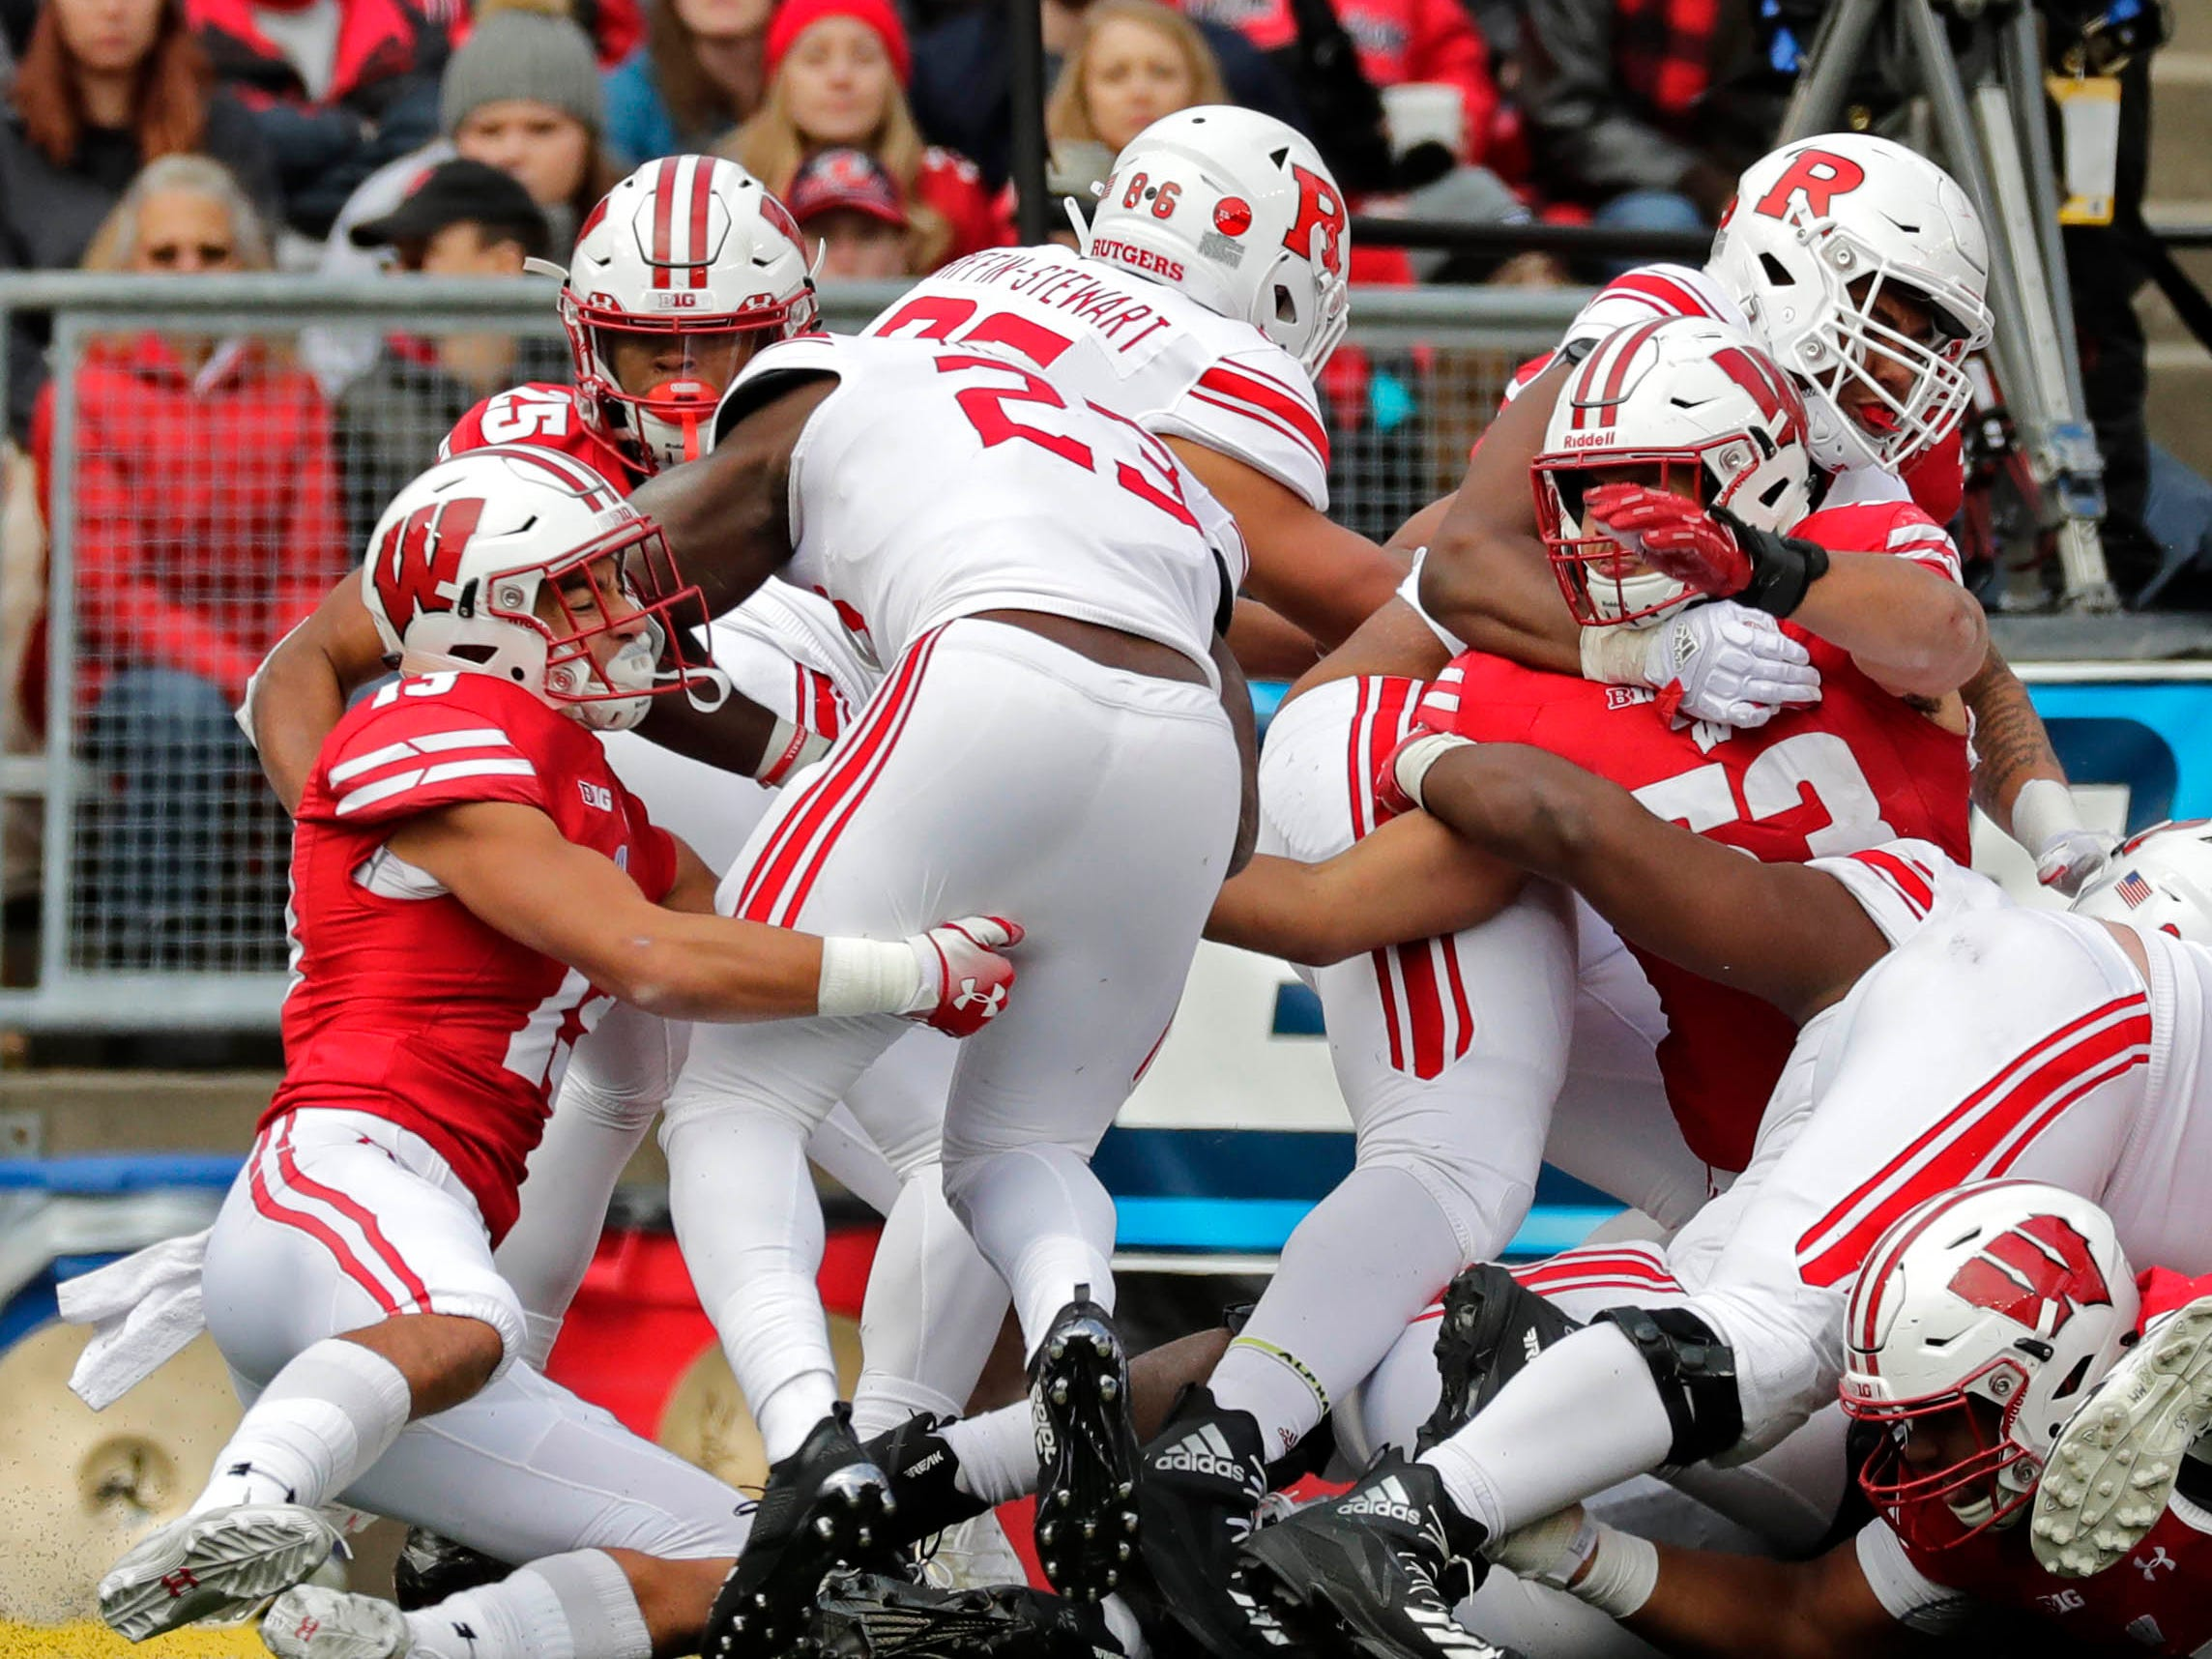 UW safety Evan Bondoc (left)  is unable to keep Rutgers running back Jonathan Hilliman from scoring a touchdown during the fourth quarter Saturday.